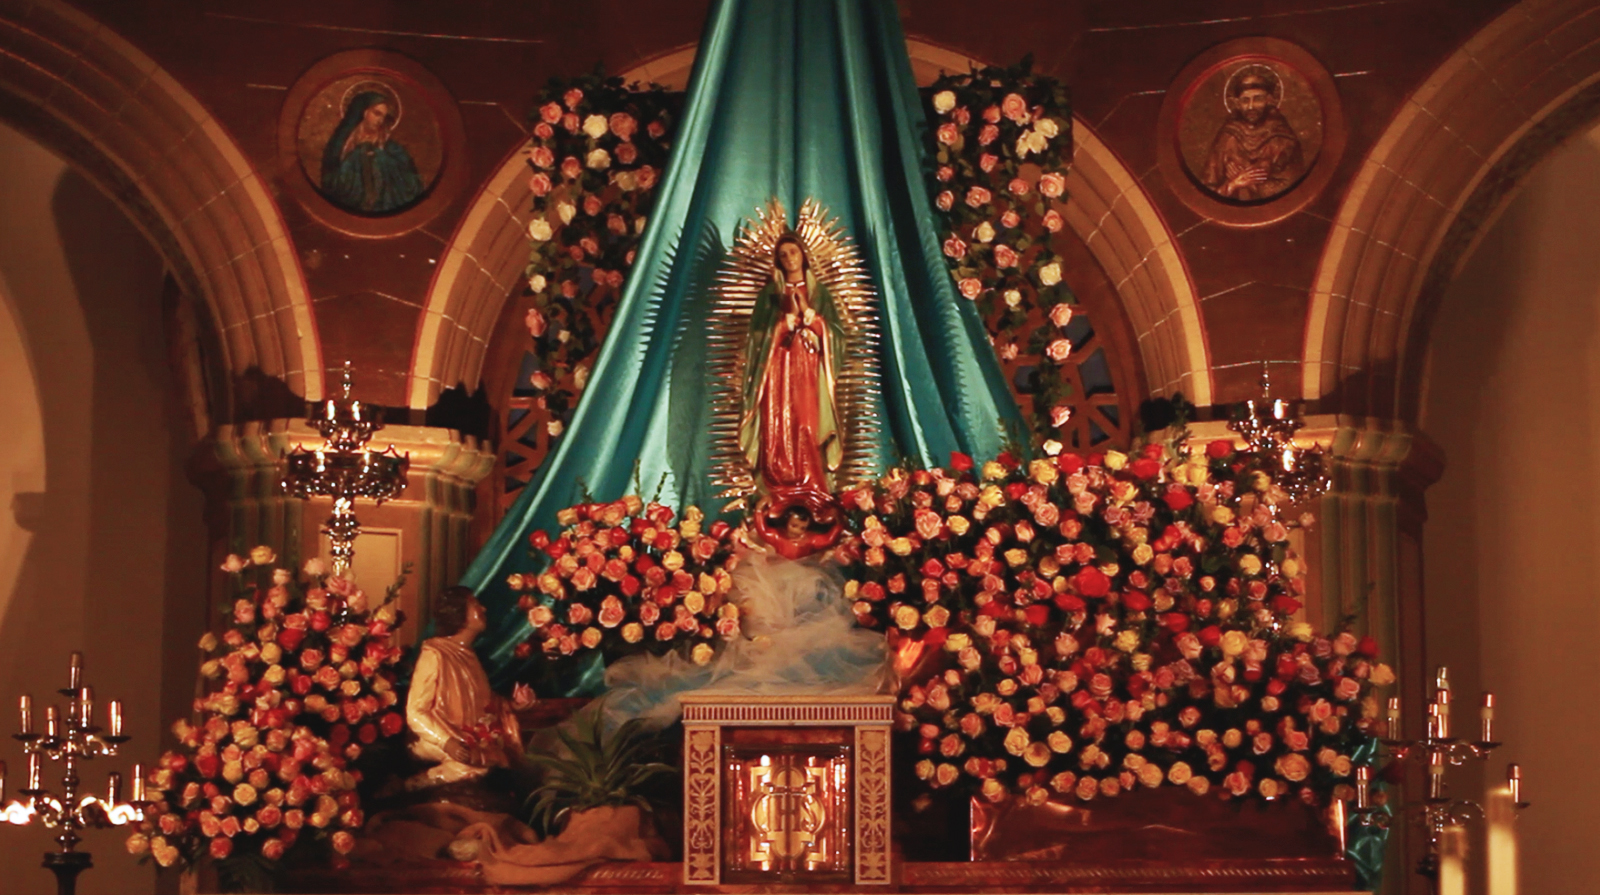 VIDEO: Celebrating the Virgen de Guadalupe